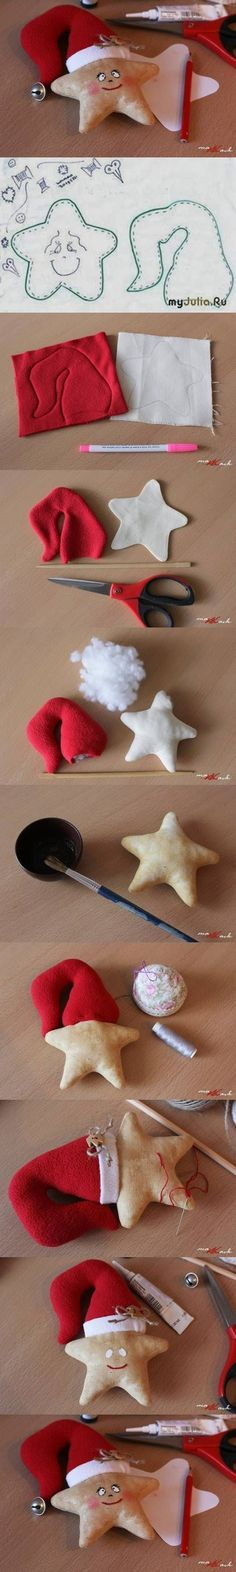 DIY Beautiful Star Christmas Ornament DIY Beautiful Star Christmas Ornament by diyforever Felt Christmas Ornaments, Christmas Art, Christmas Projects, Christmas Holidays, Fabric Ornaments, Beautiful Christmas, Felt Decorations, Christmas Decorations, Felt Crafts